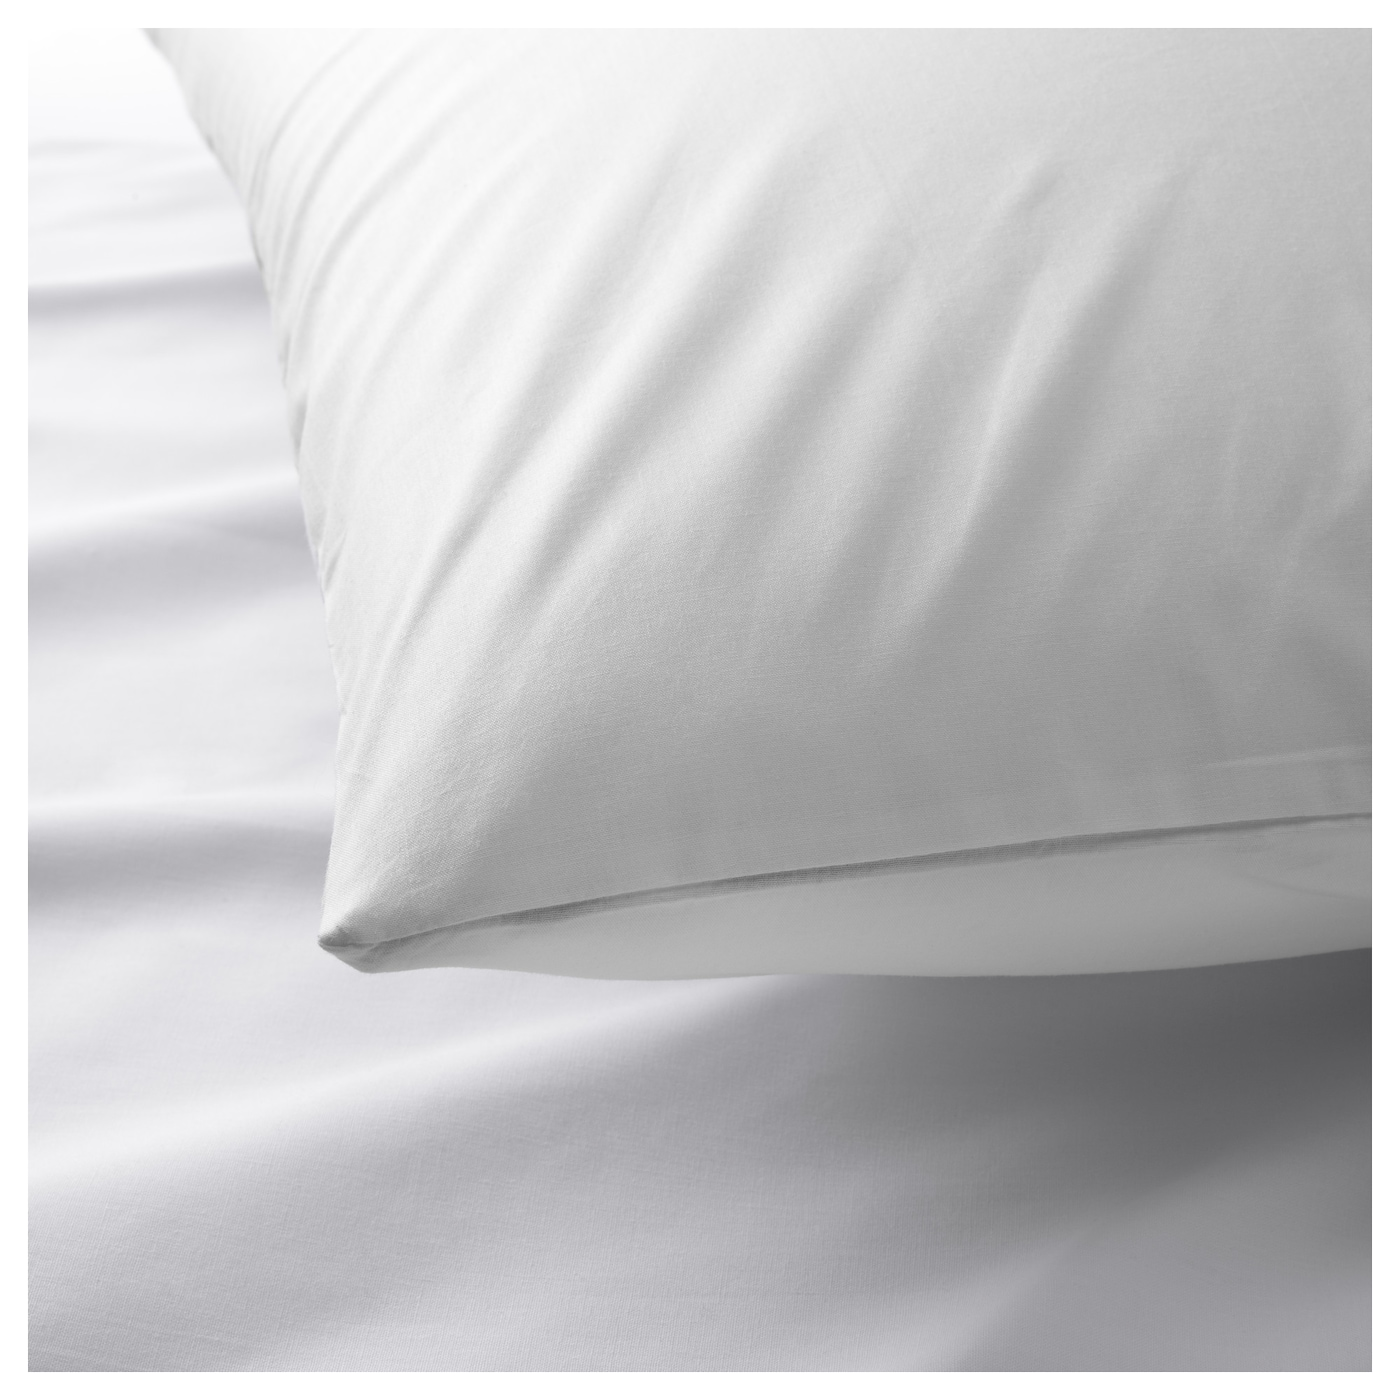 IKEA MÅNVIVA pillowcase for memory foam pillow Cotton, feels soft and nice against your skin.